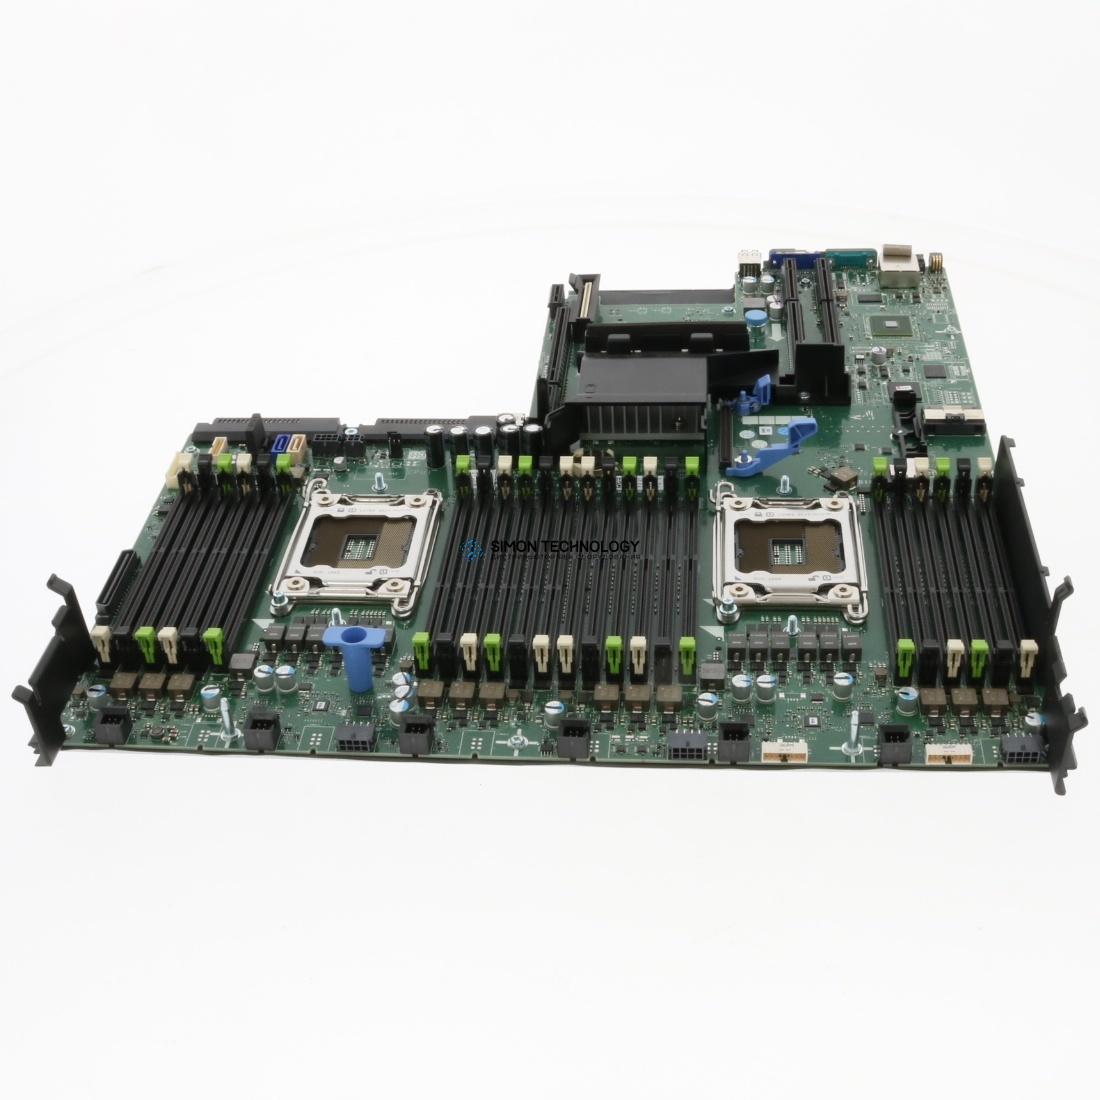 Материнская плата Dell PowerEdge R720 8x3.5 VRCY5 Ask for custom qoute (PER720-LFF-8-VRCY5)